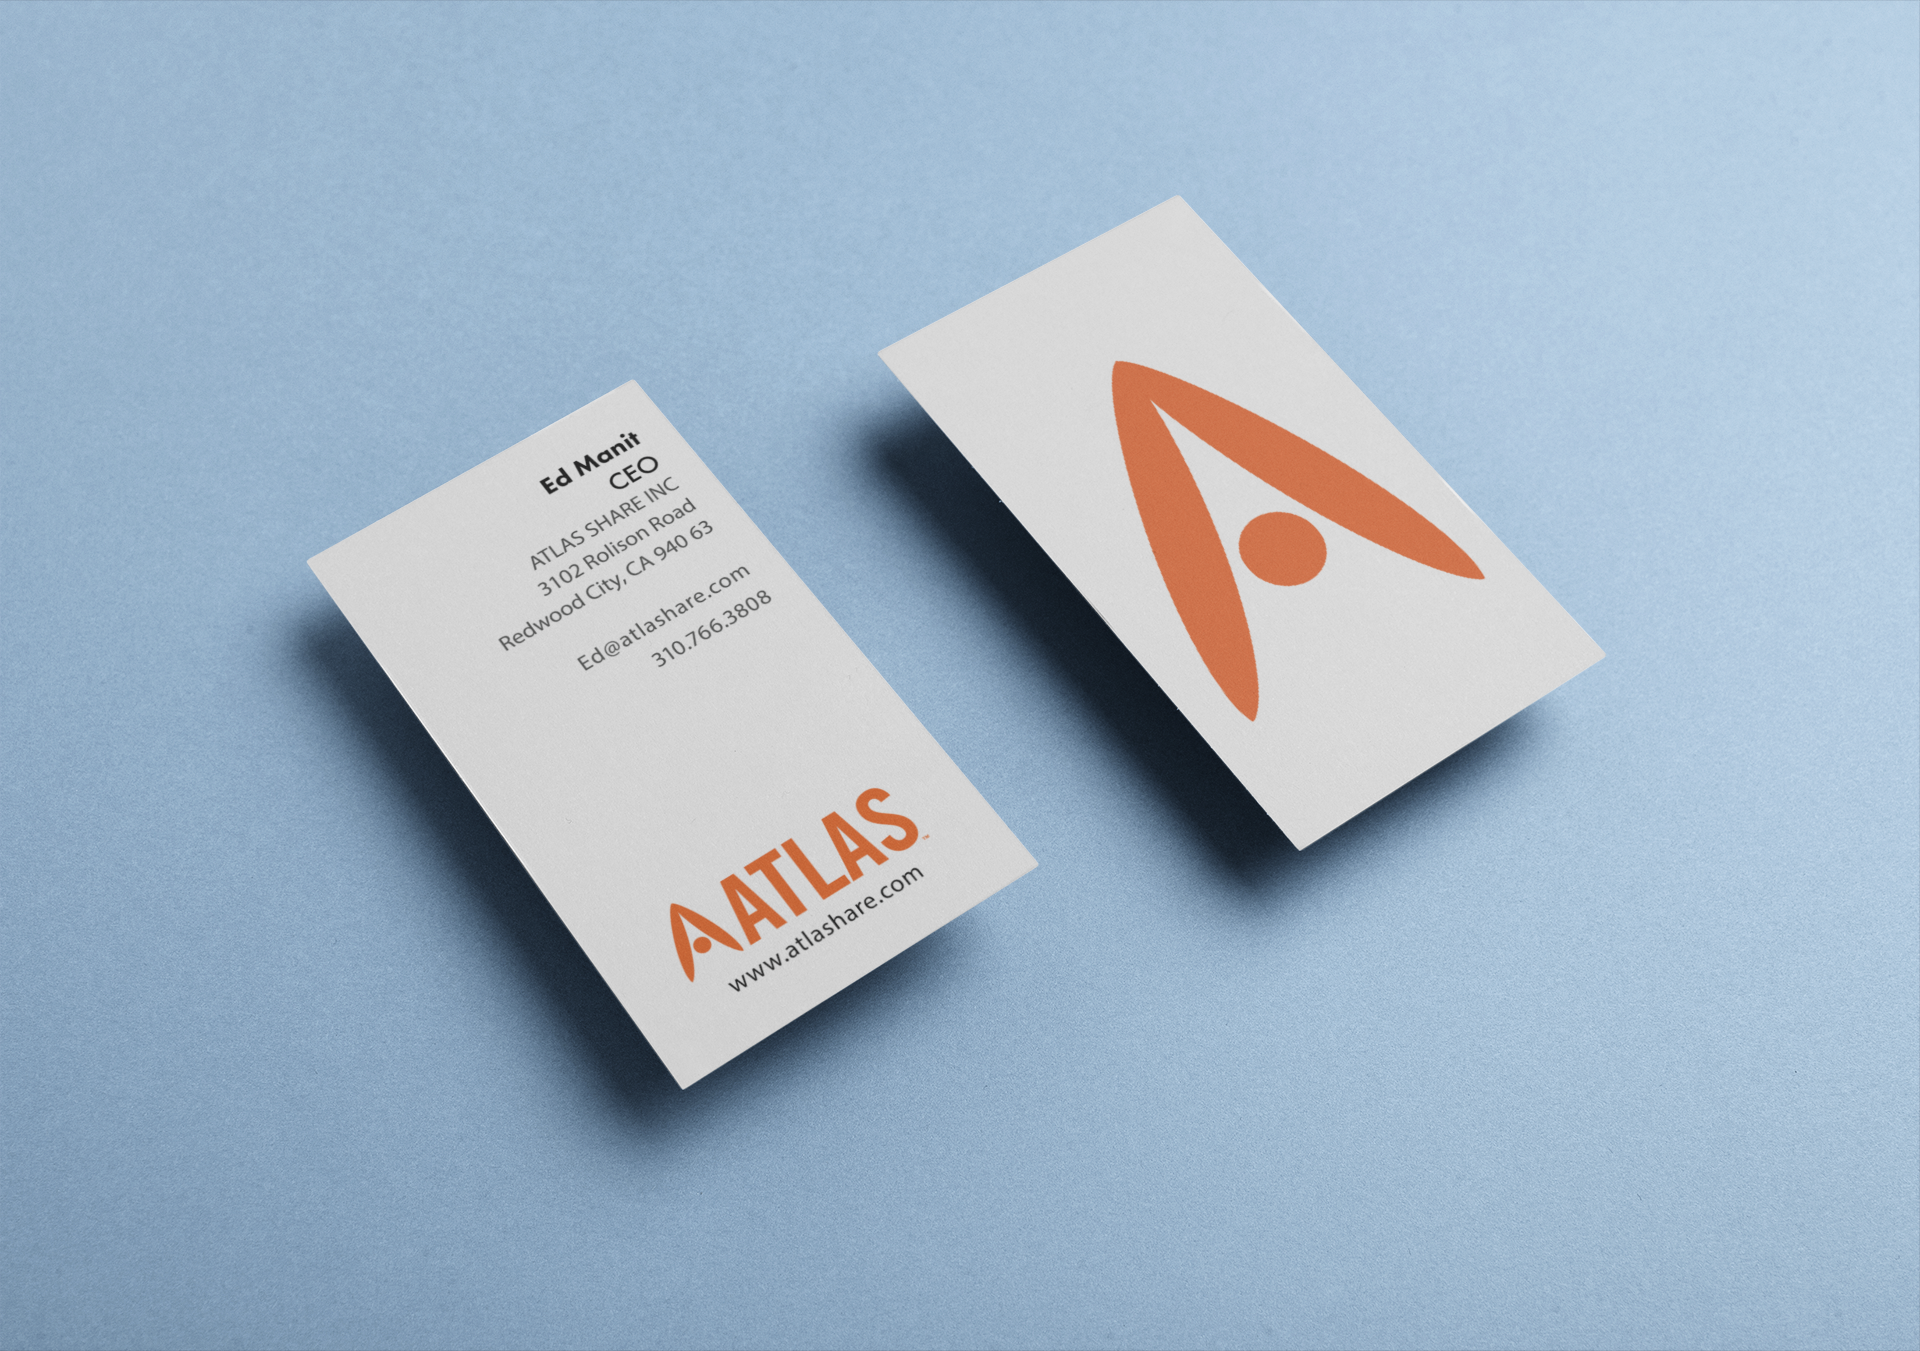 Atlas Share - Altas Share business cards are fun, trendy, and hip. They are printed on a thick satin card stock that feels silky to the touch.